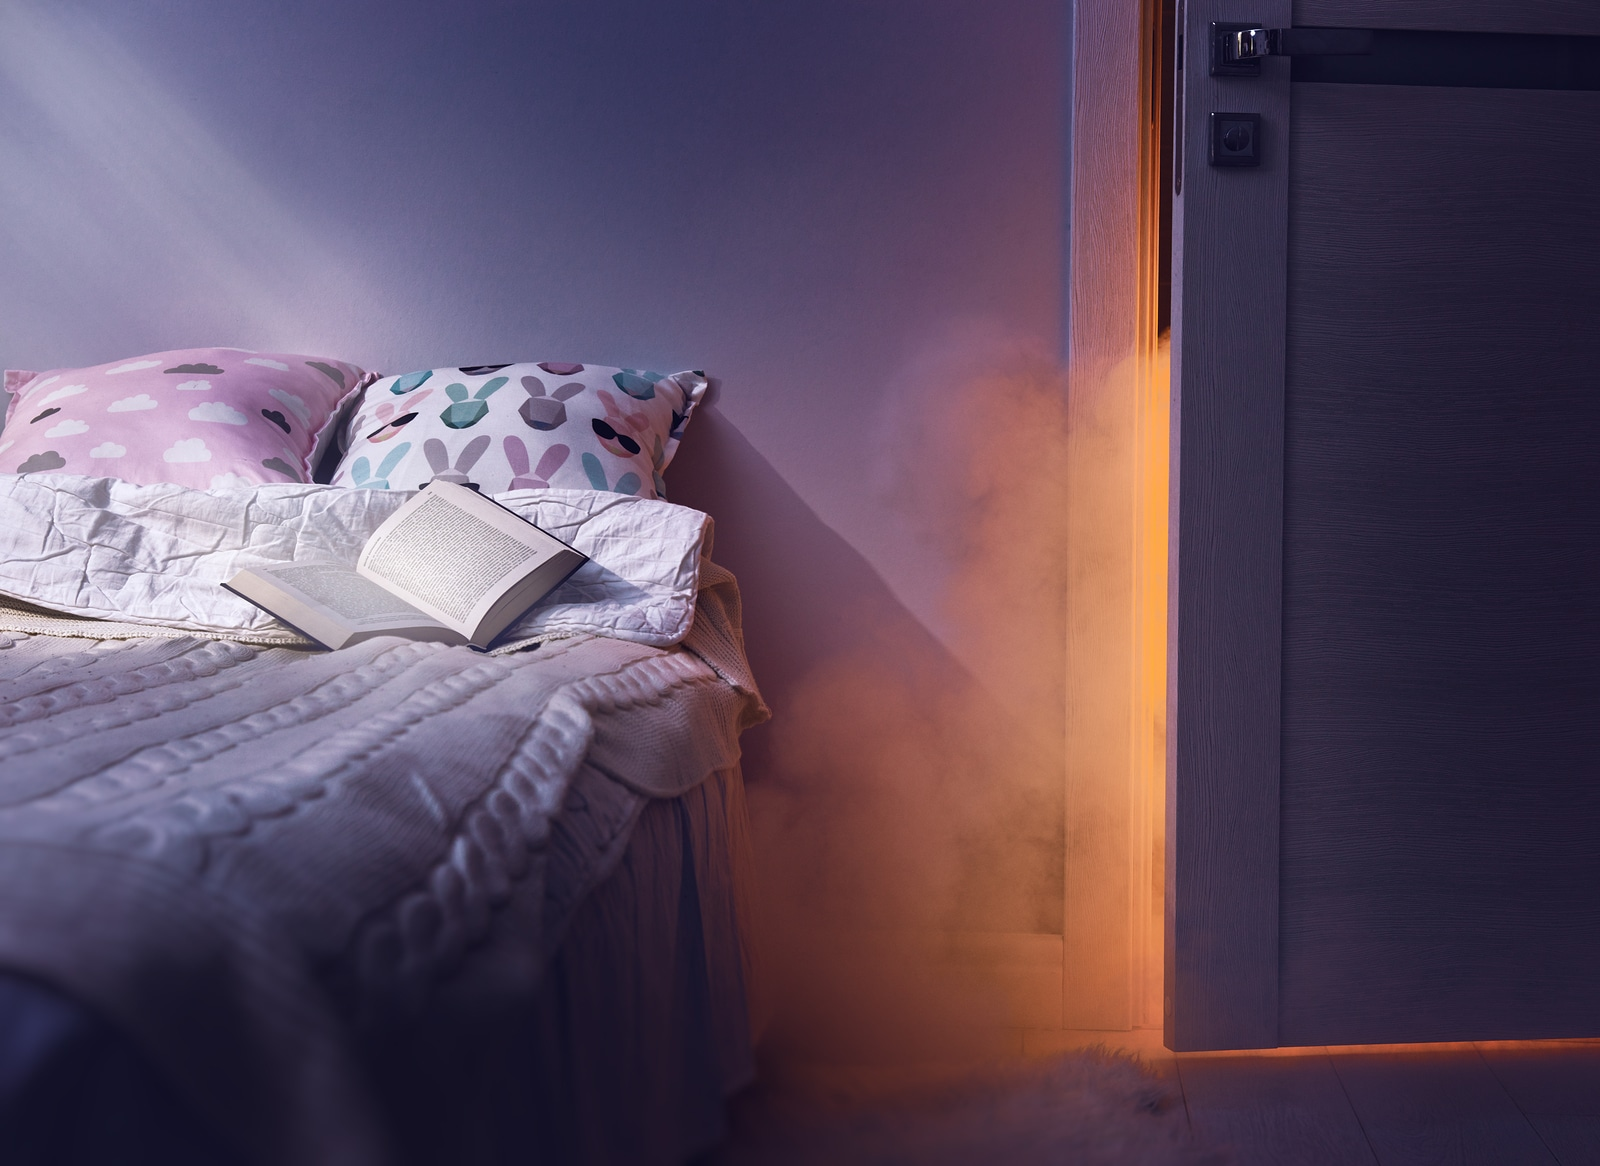 5 Reasons Why You're Having Weird Dreams